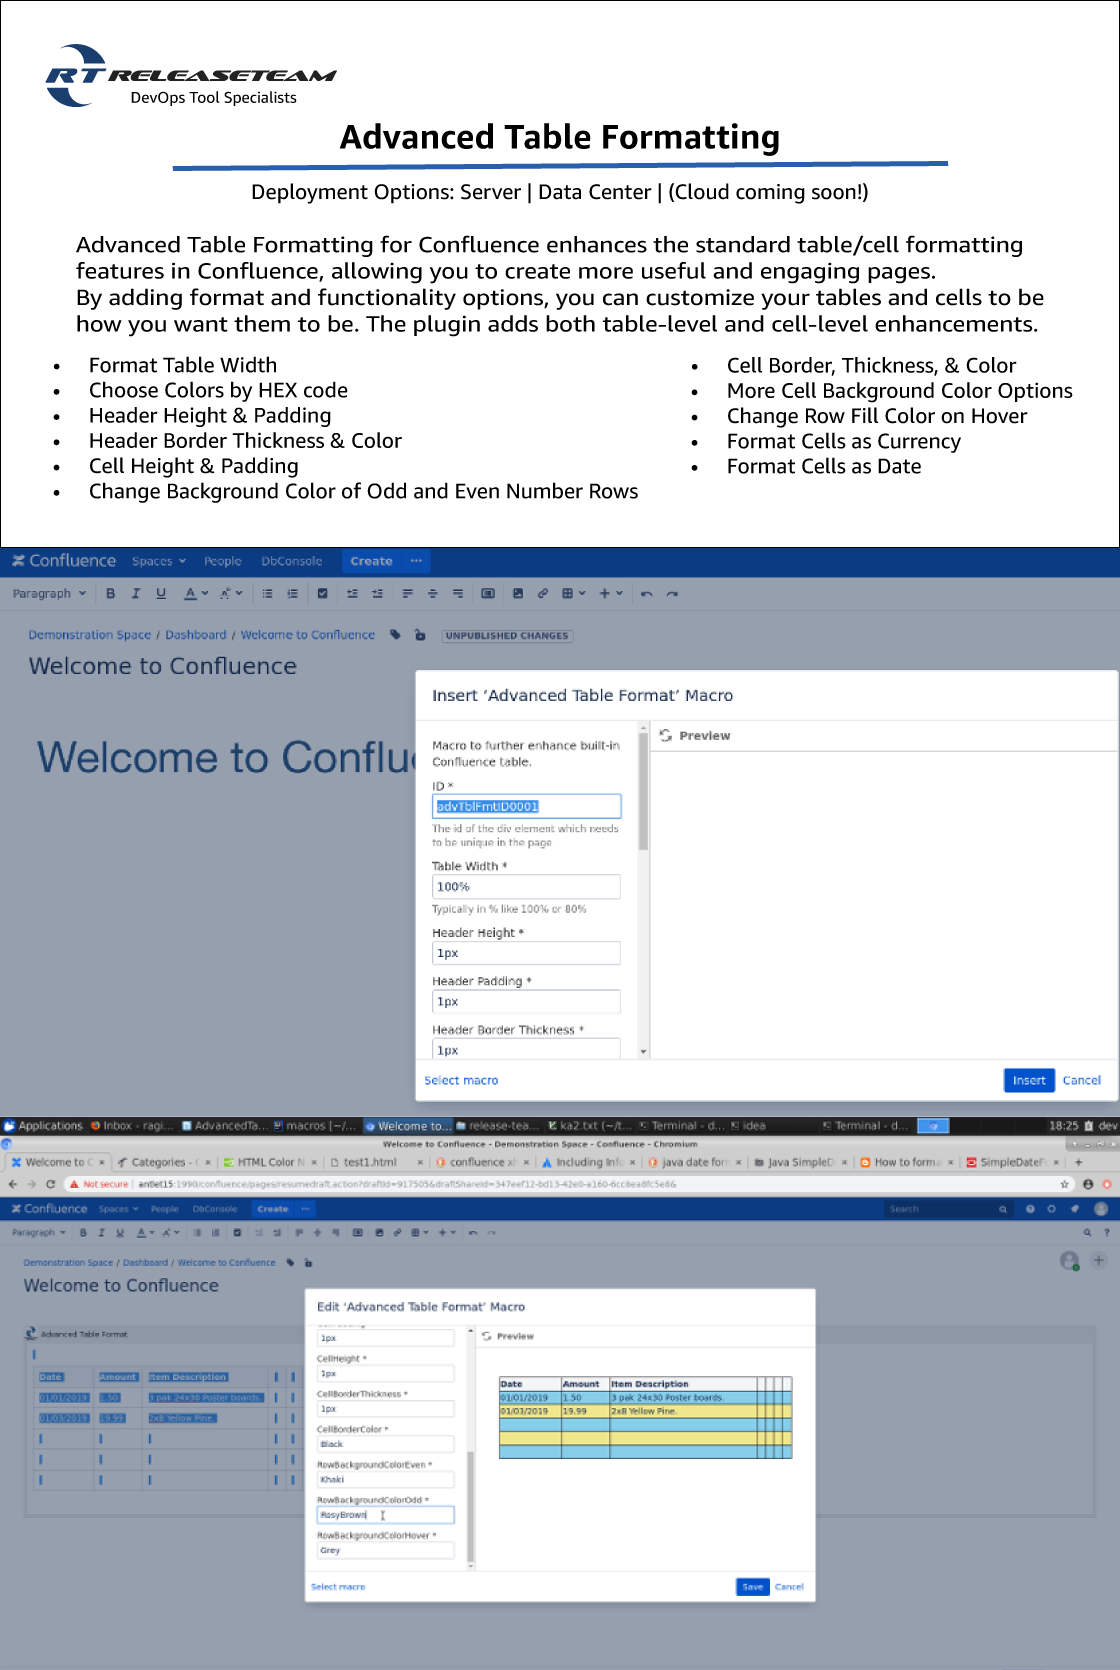 Documentation screenshots for Advanced Table Formatting for Confluence